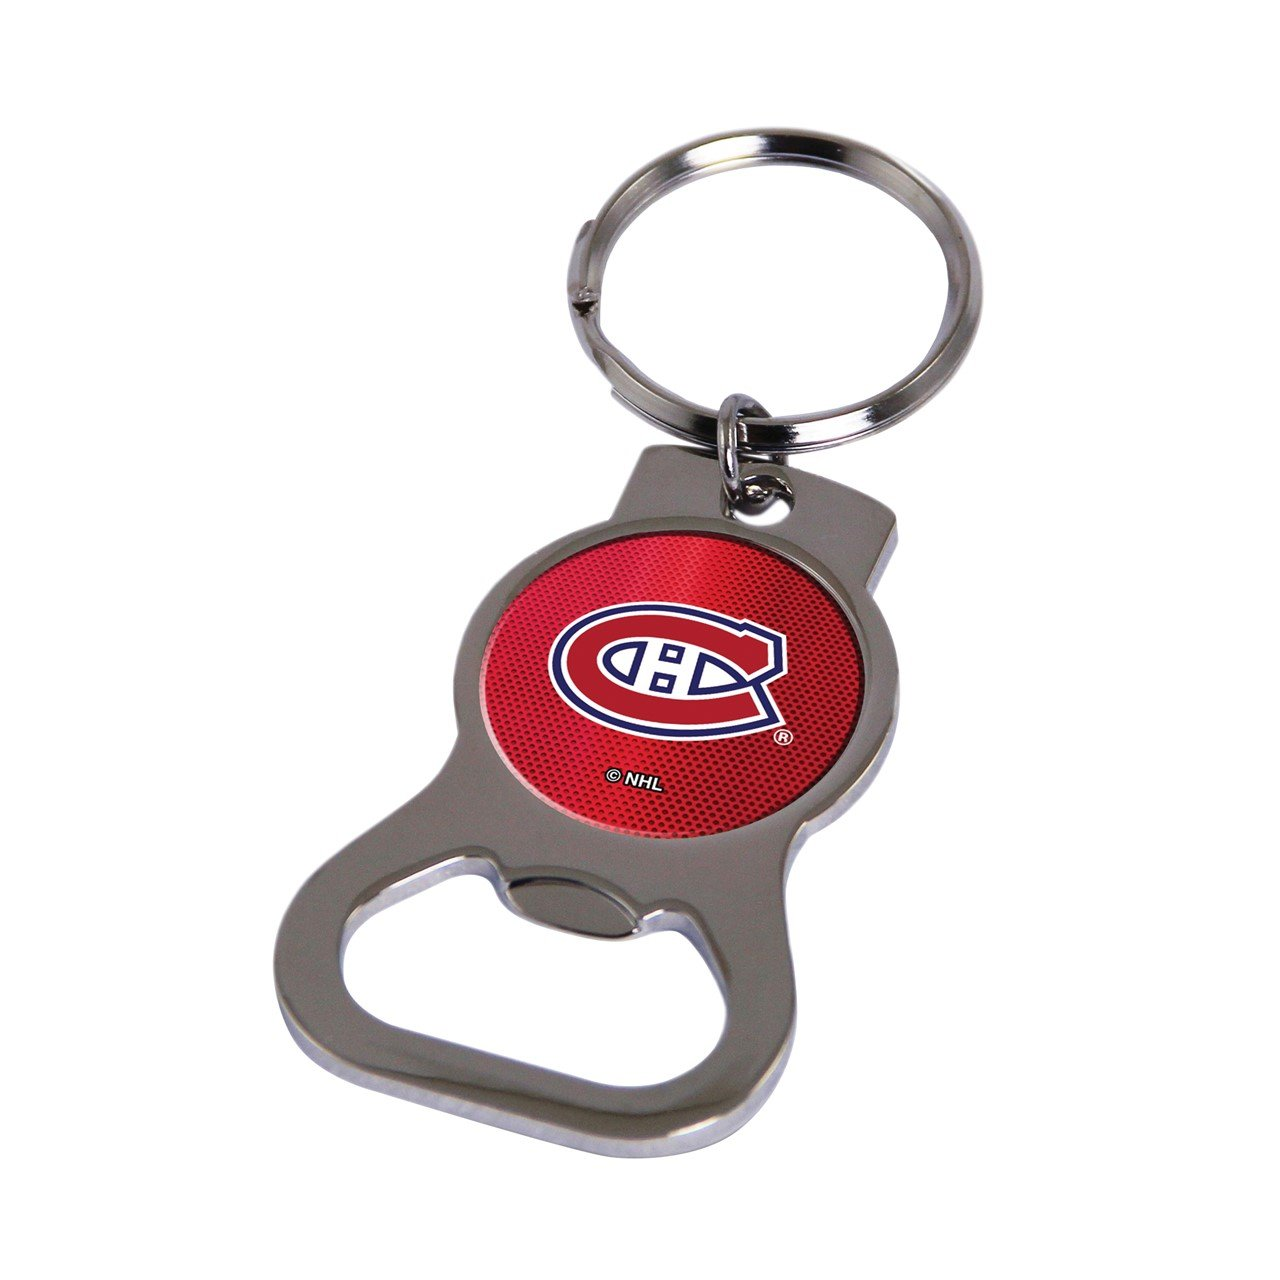 NHL Montreal Canadiens Bottle Opener Key Ring by Rico Industries